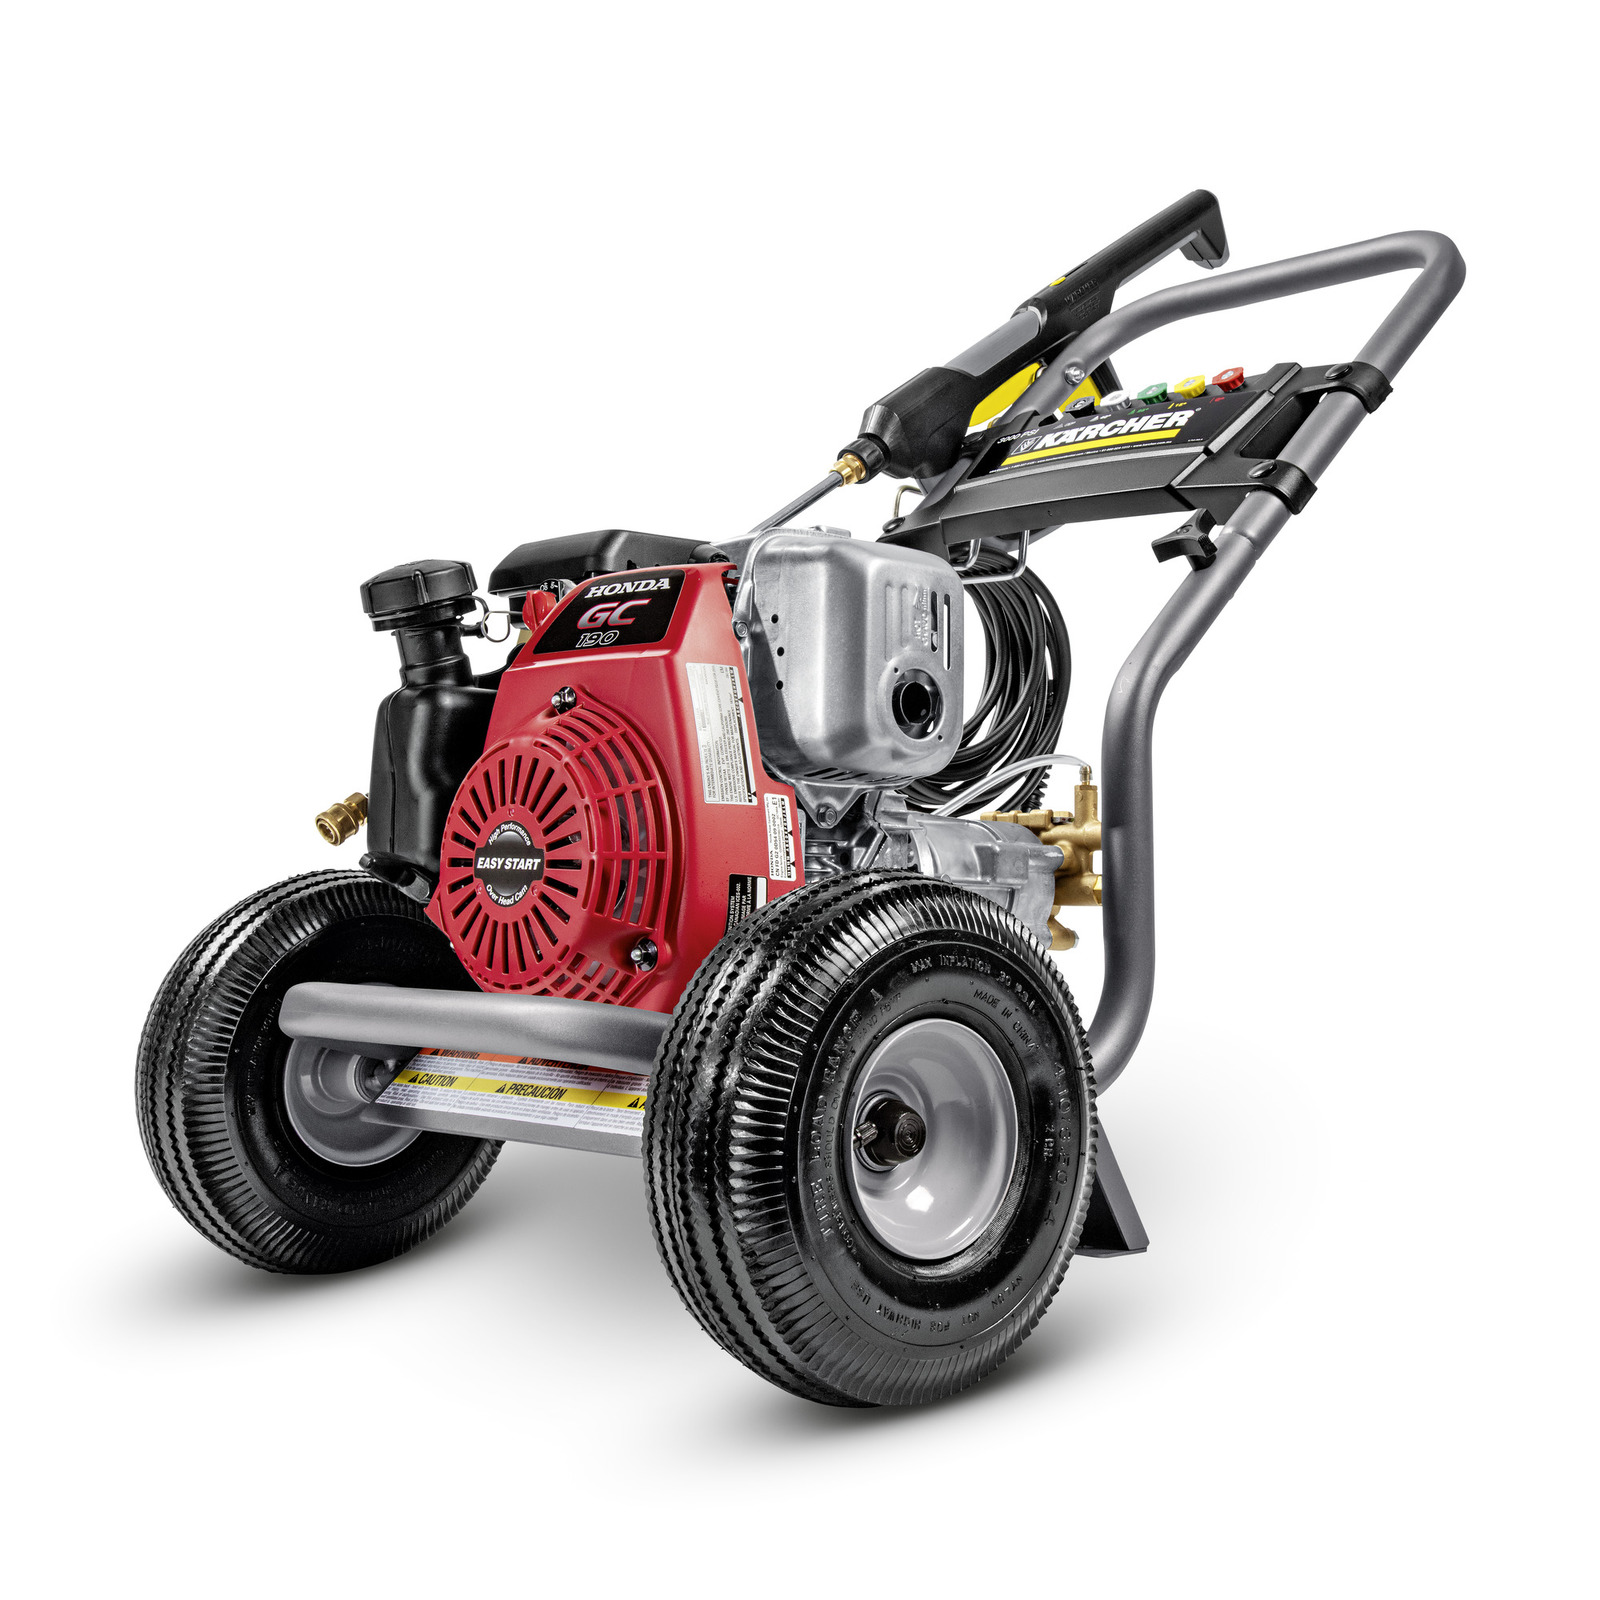 ... Powerhouse That Generates 3200 PSI And Is Powered By A Reliable Honda  GC190 Engine. Equipped With A Patented Maintenance Free Pump With Brass  Head.